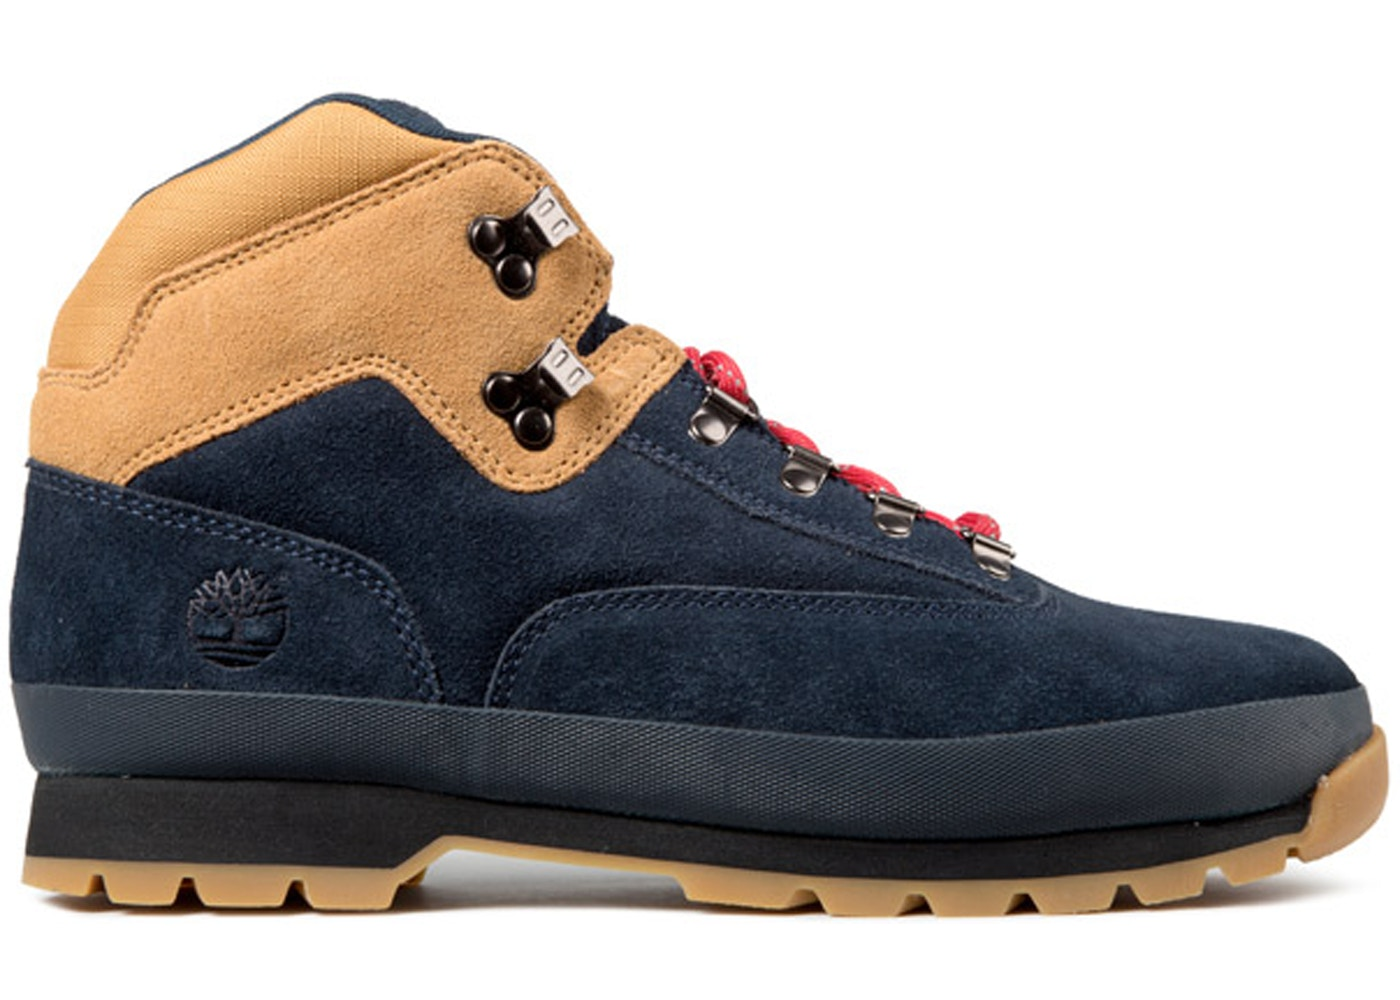 the best attitude 675f8 74089 Timberland Euro Hiker 10.Deep the Nomad (Navy) - 6215A